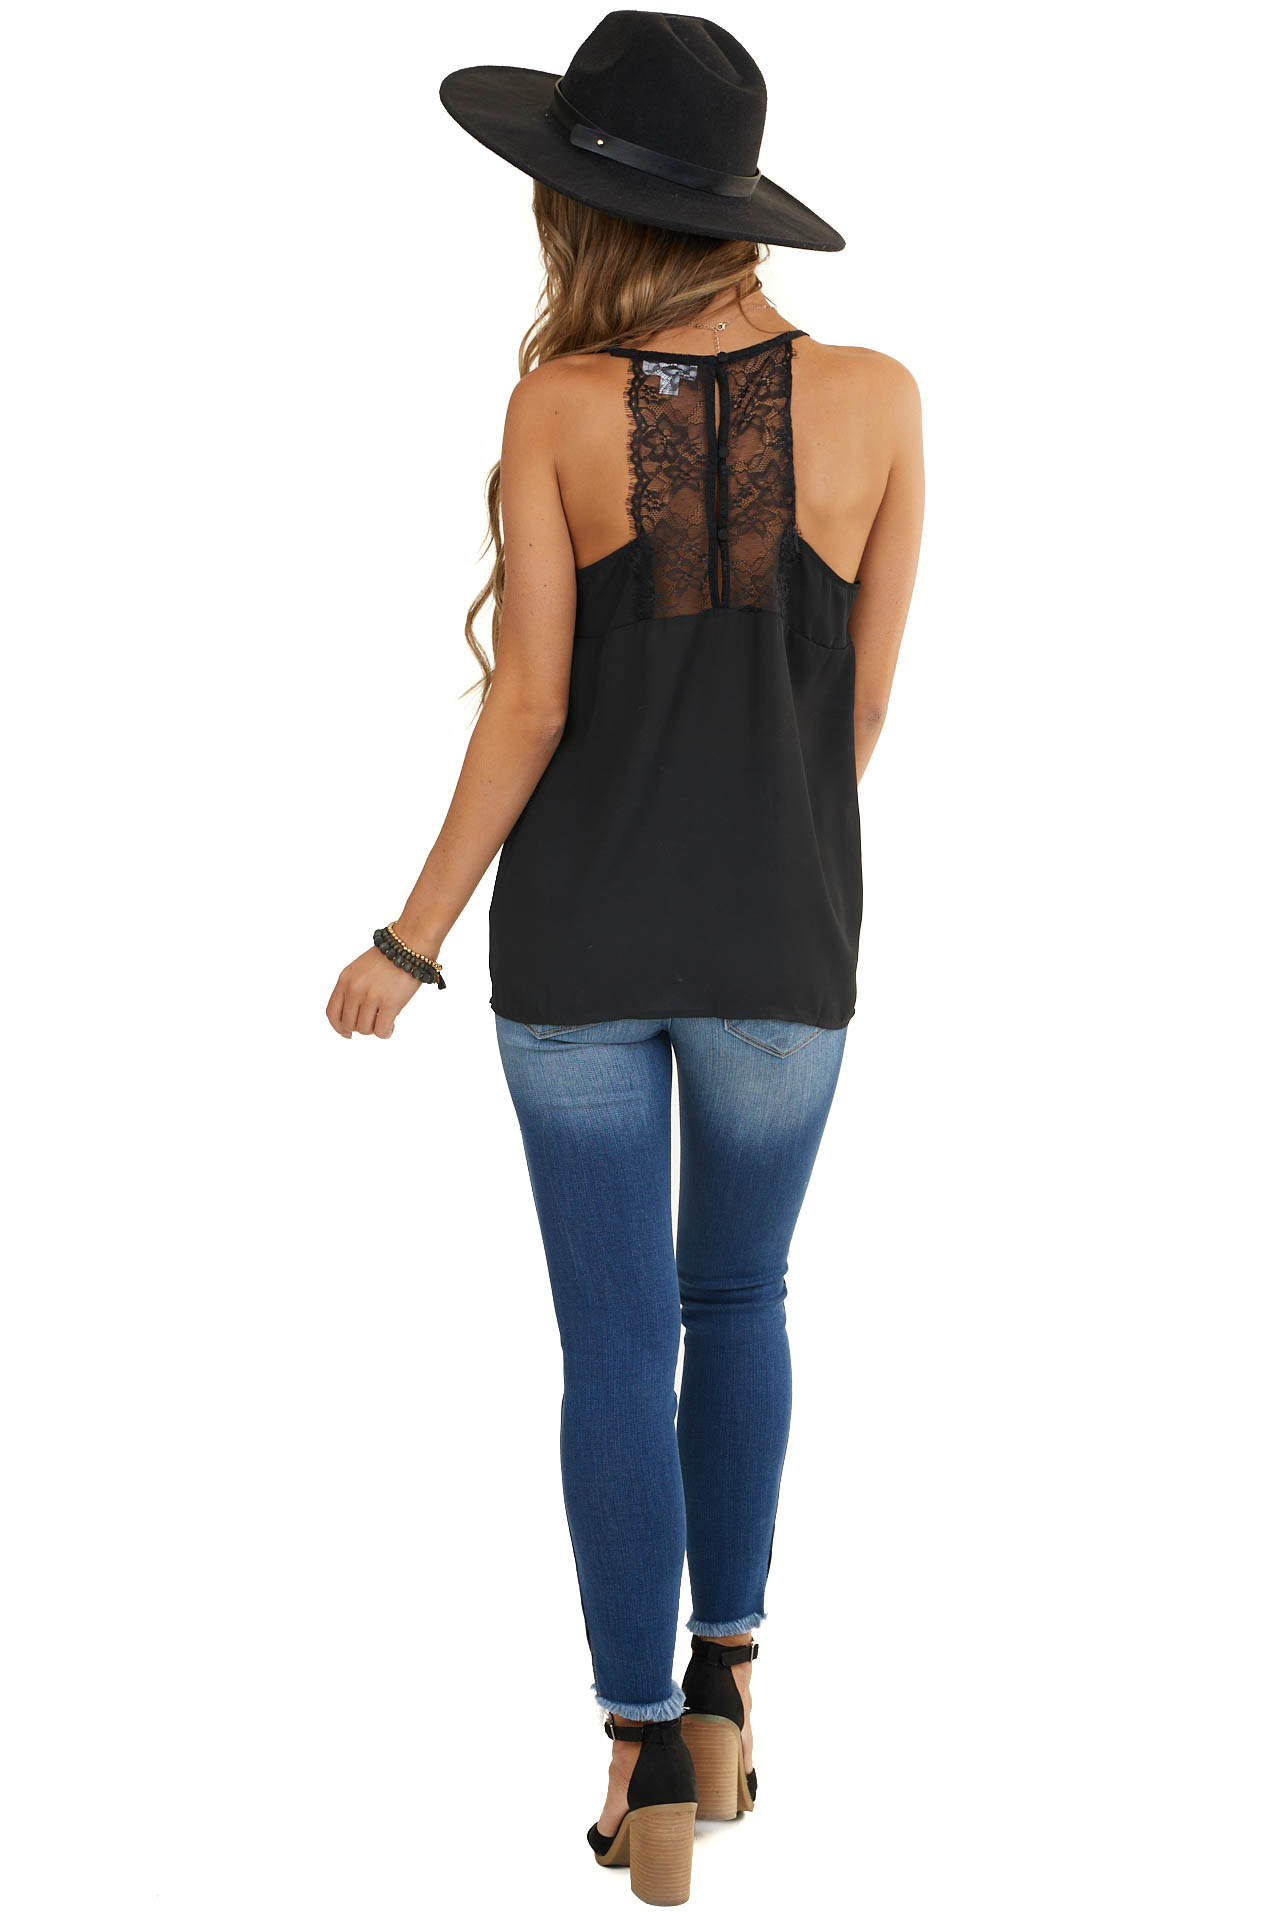 Black Sleeveless Racerback Woven Top with Lace Detail